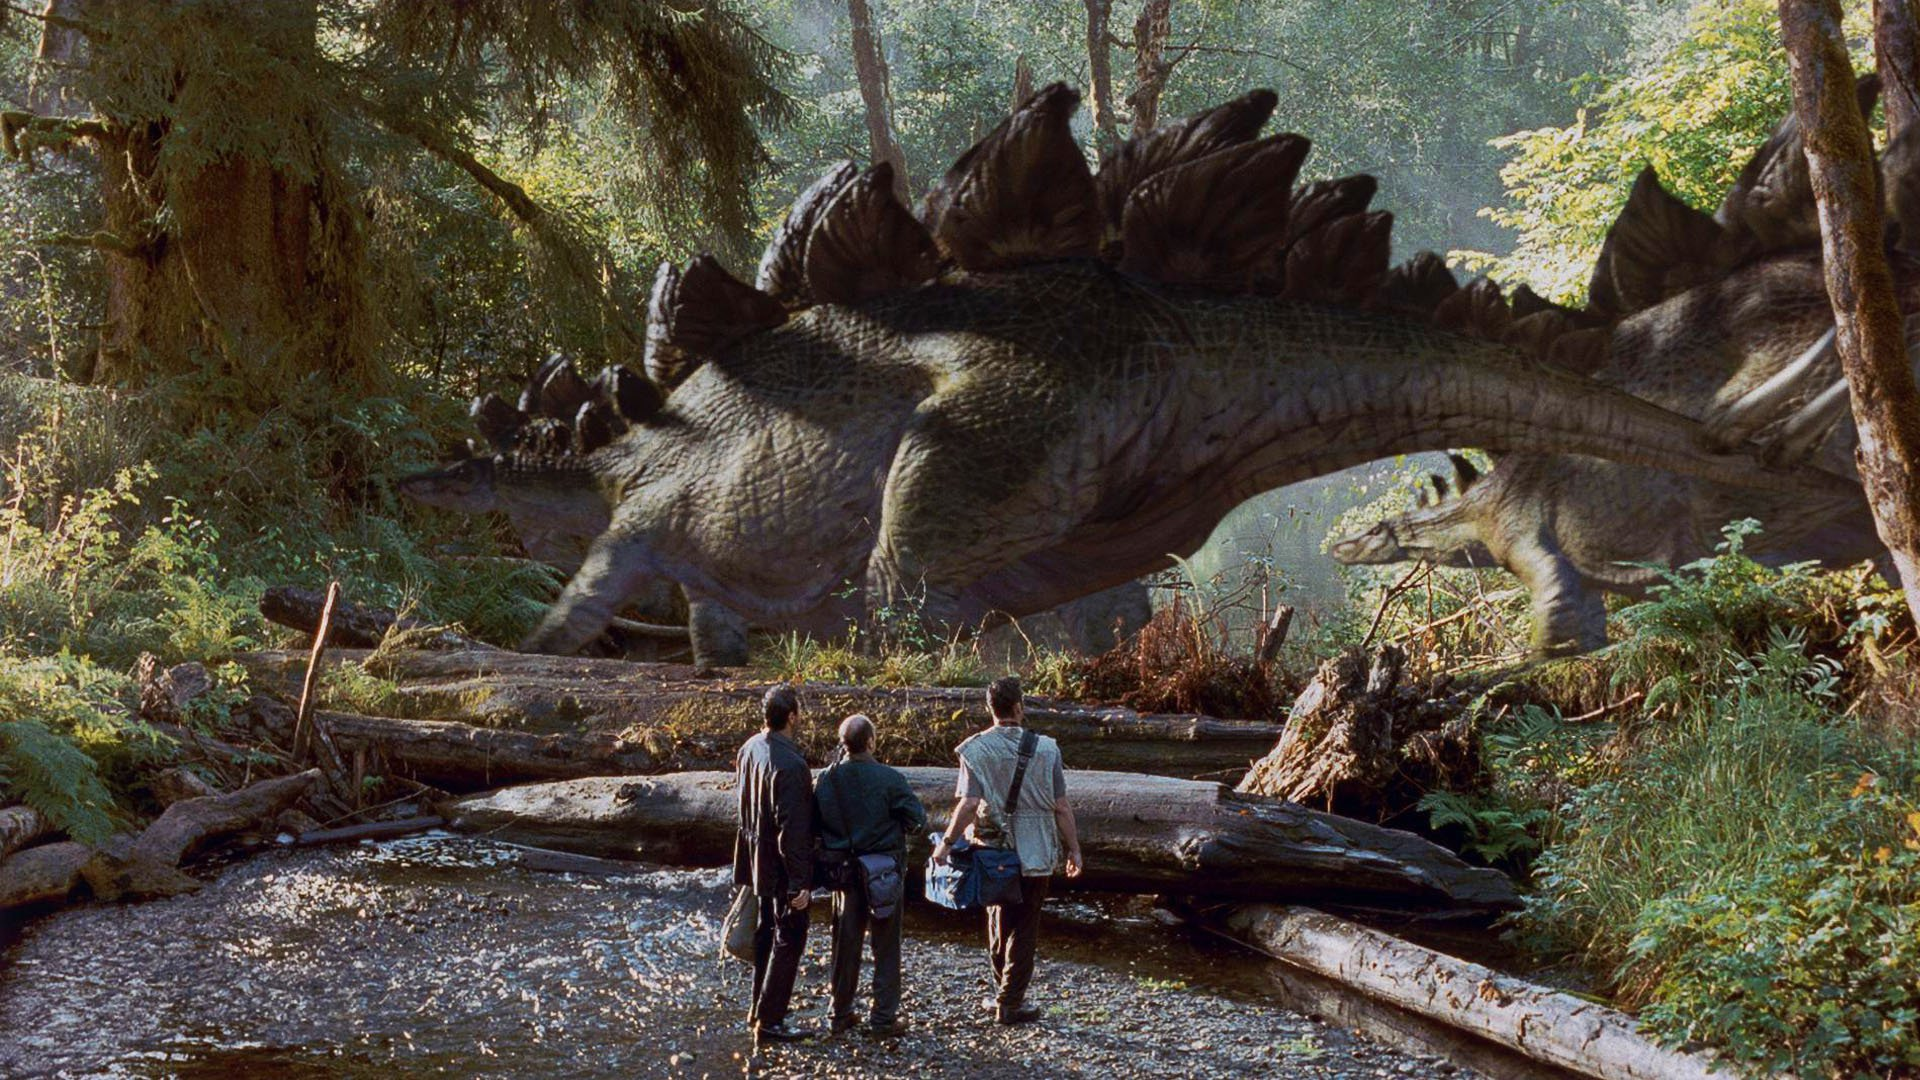 Top Most Awaited Hollywood Movies of All Time; The Lost World: Jurassic Park